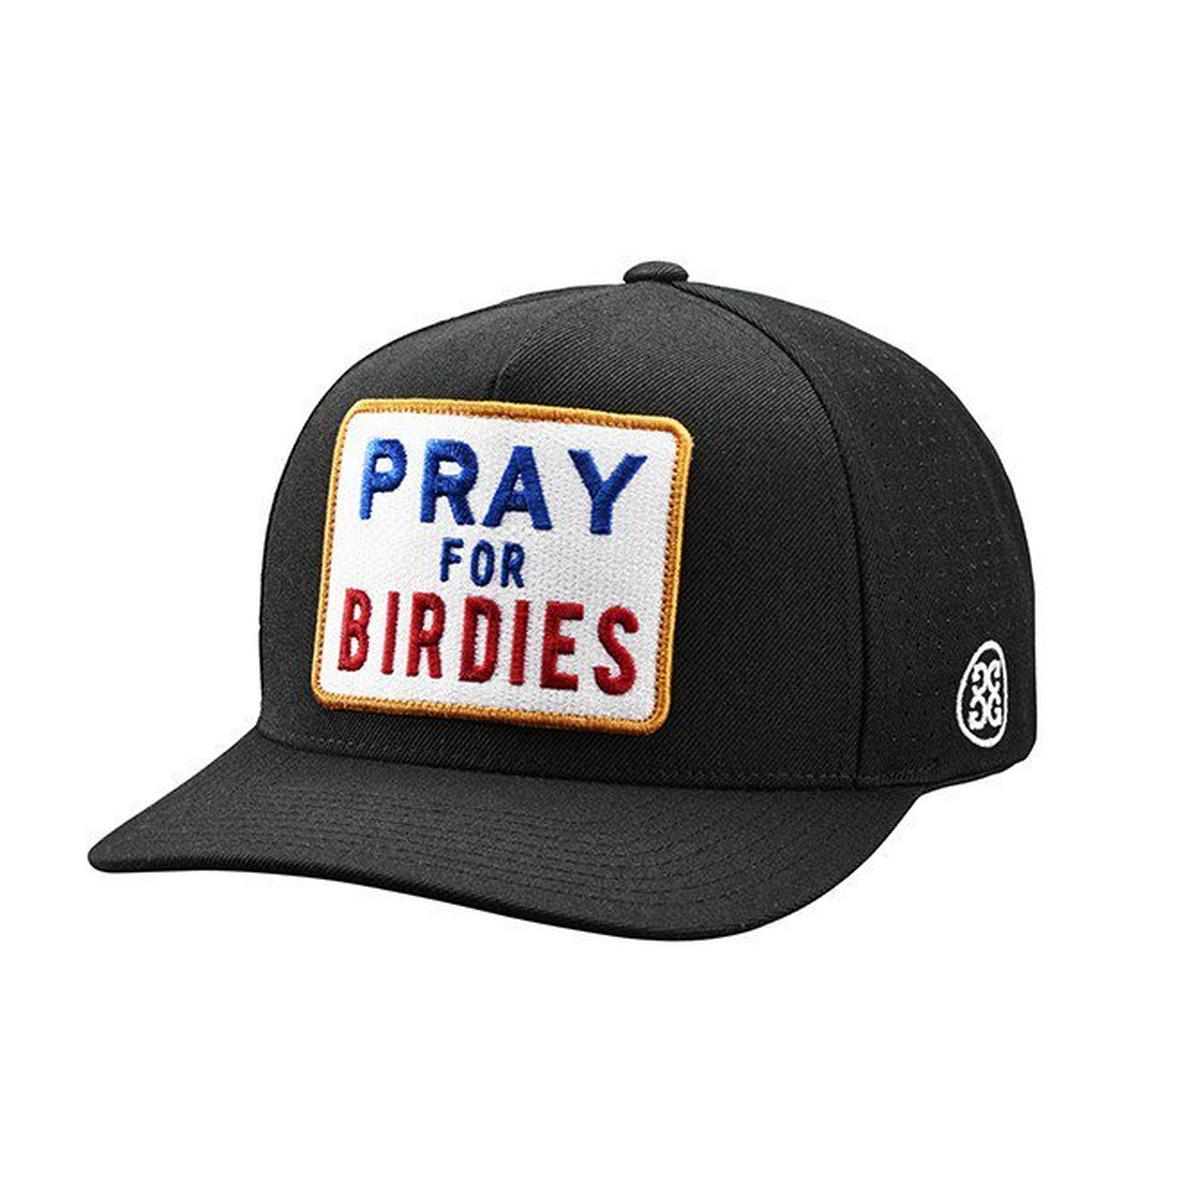 5c0839d6426 Men s Pray for Birdies Snapback Cap   Golf Town Limited